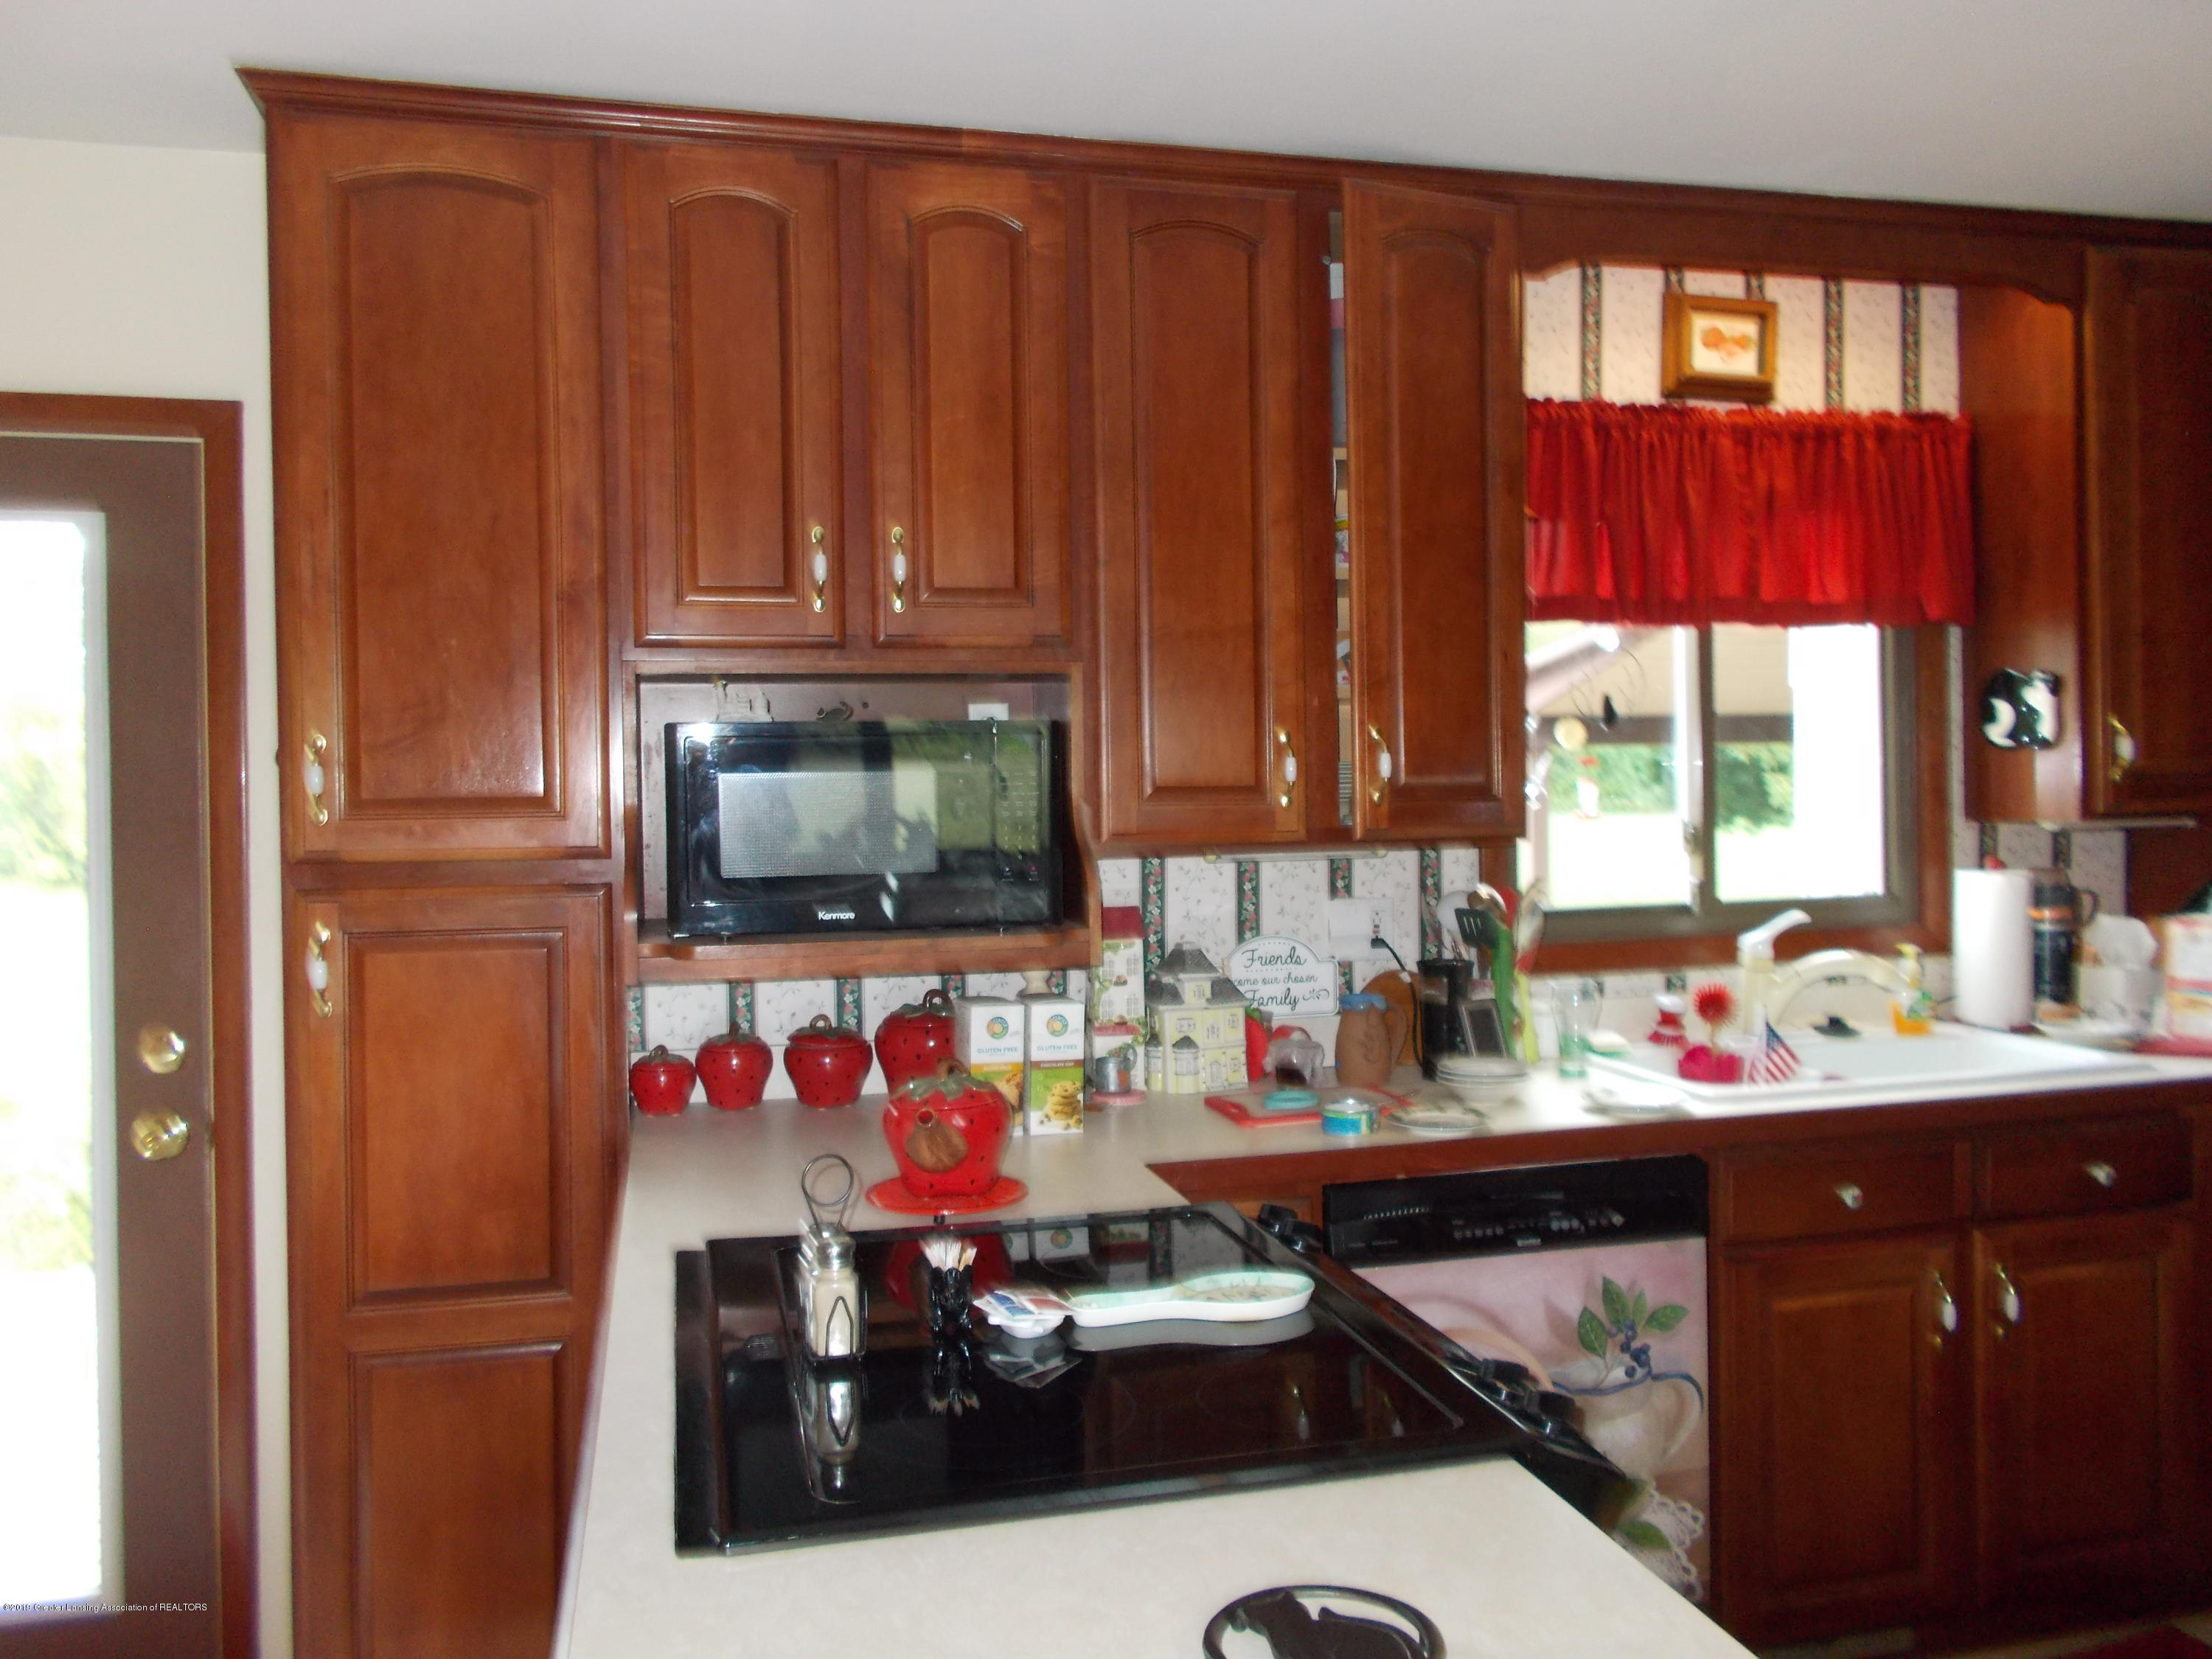 8625 E Bellevue Hwy - kitchen - 20